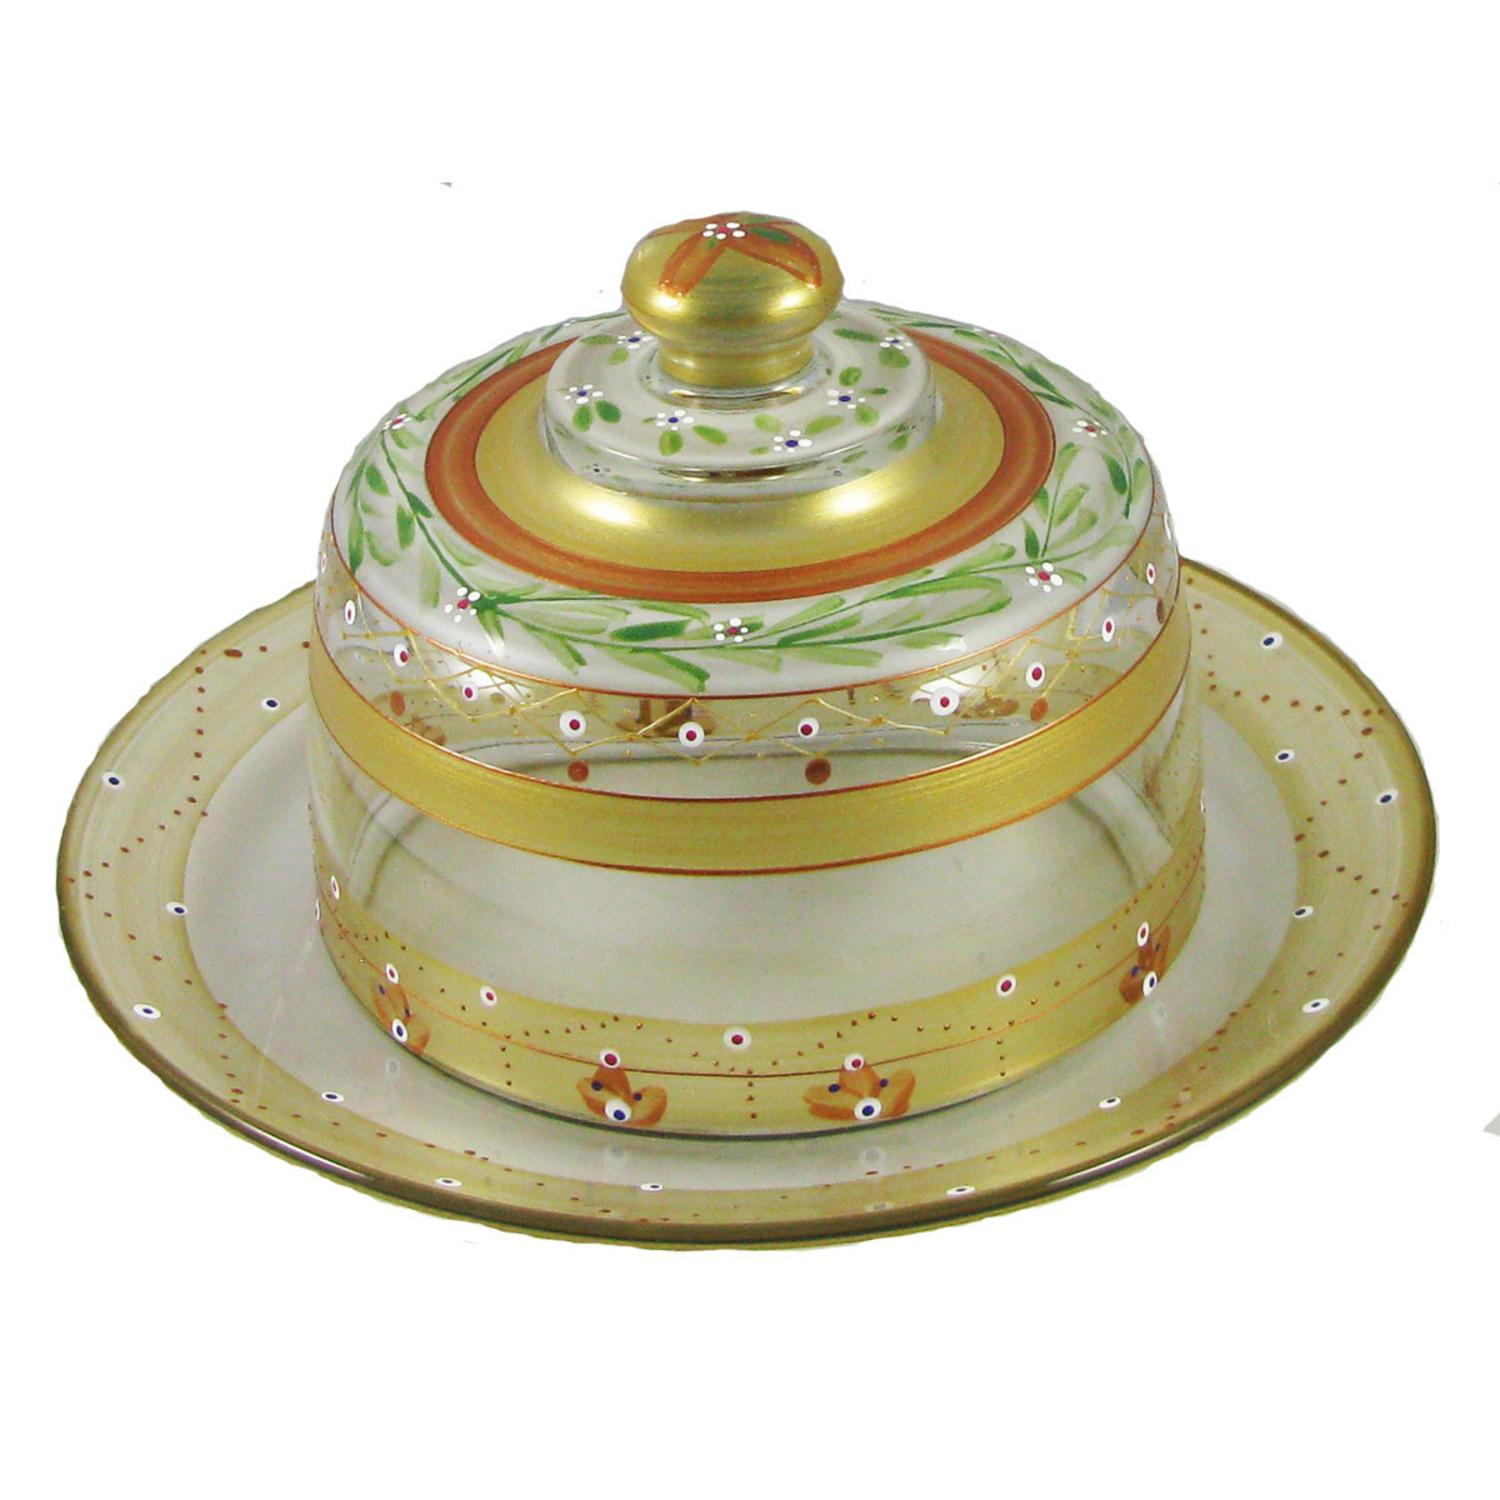 Mosaic Gold Garland & Stripes Hand Painted Glass Cheese Dome with Plate 6""